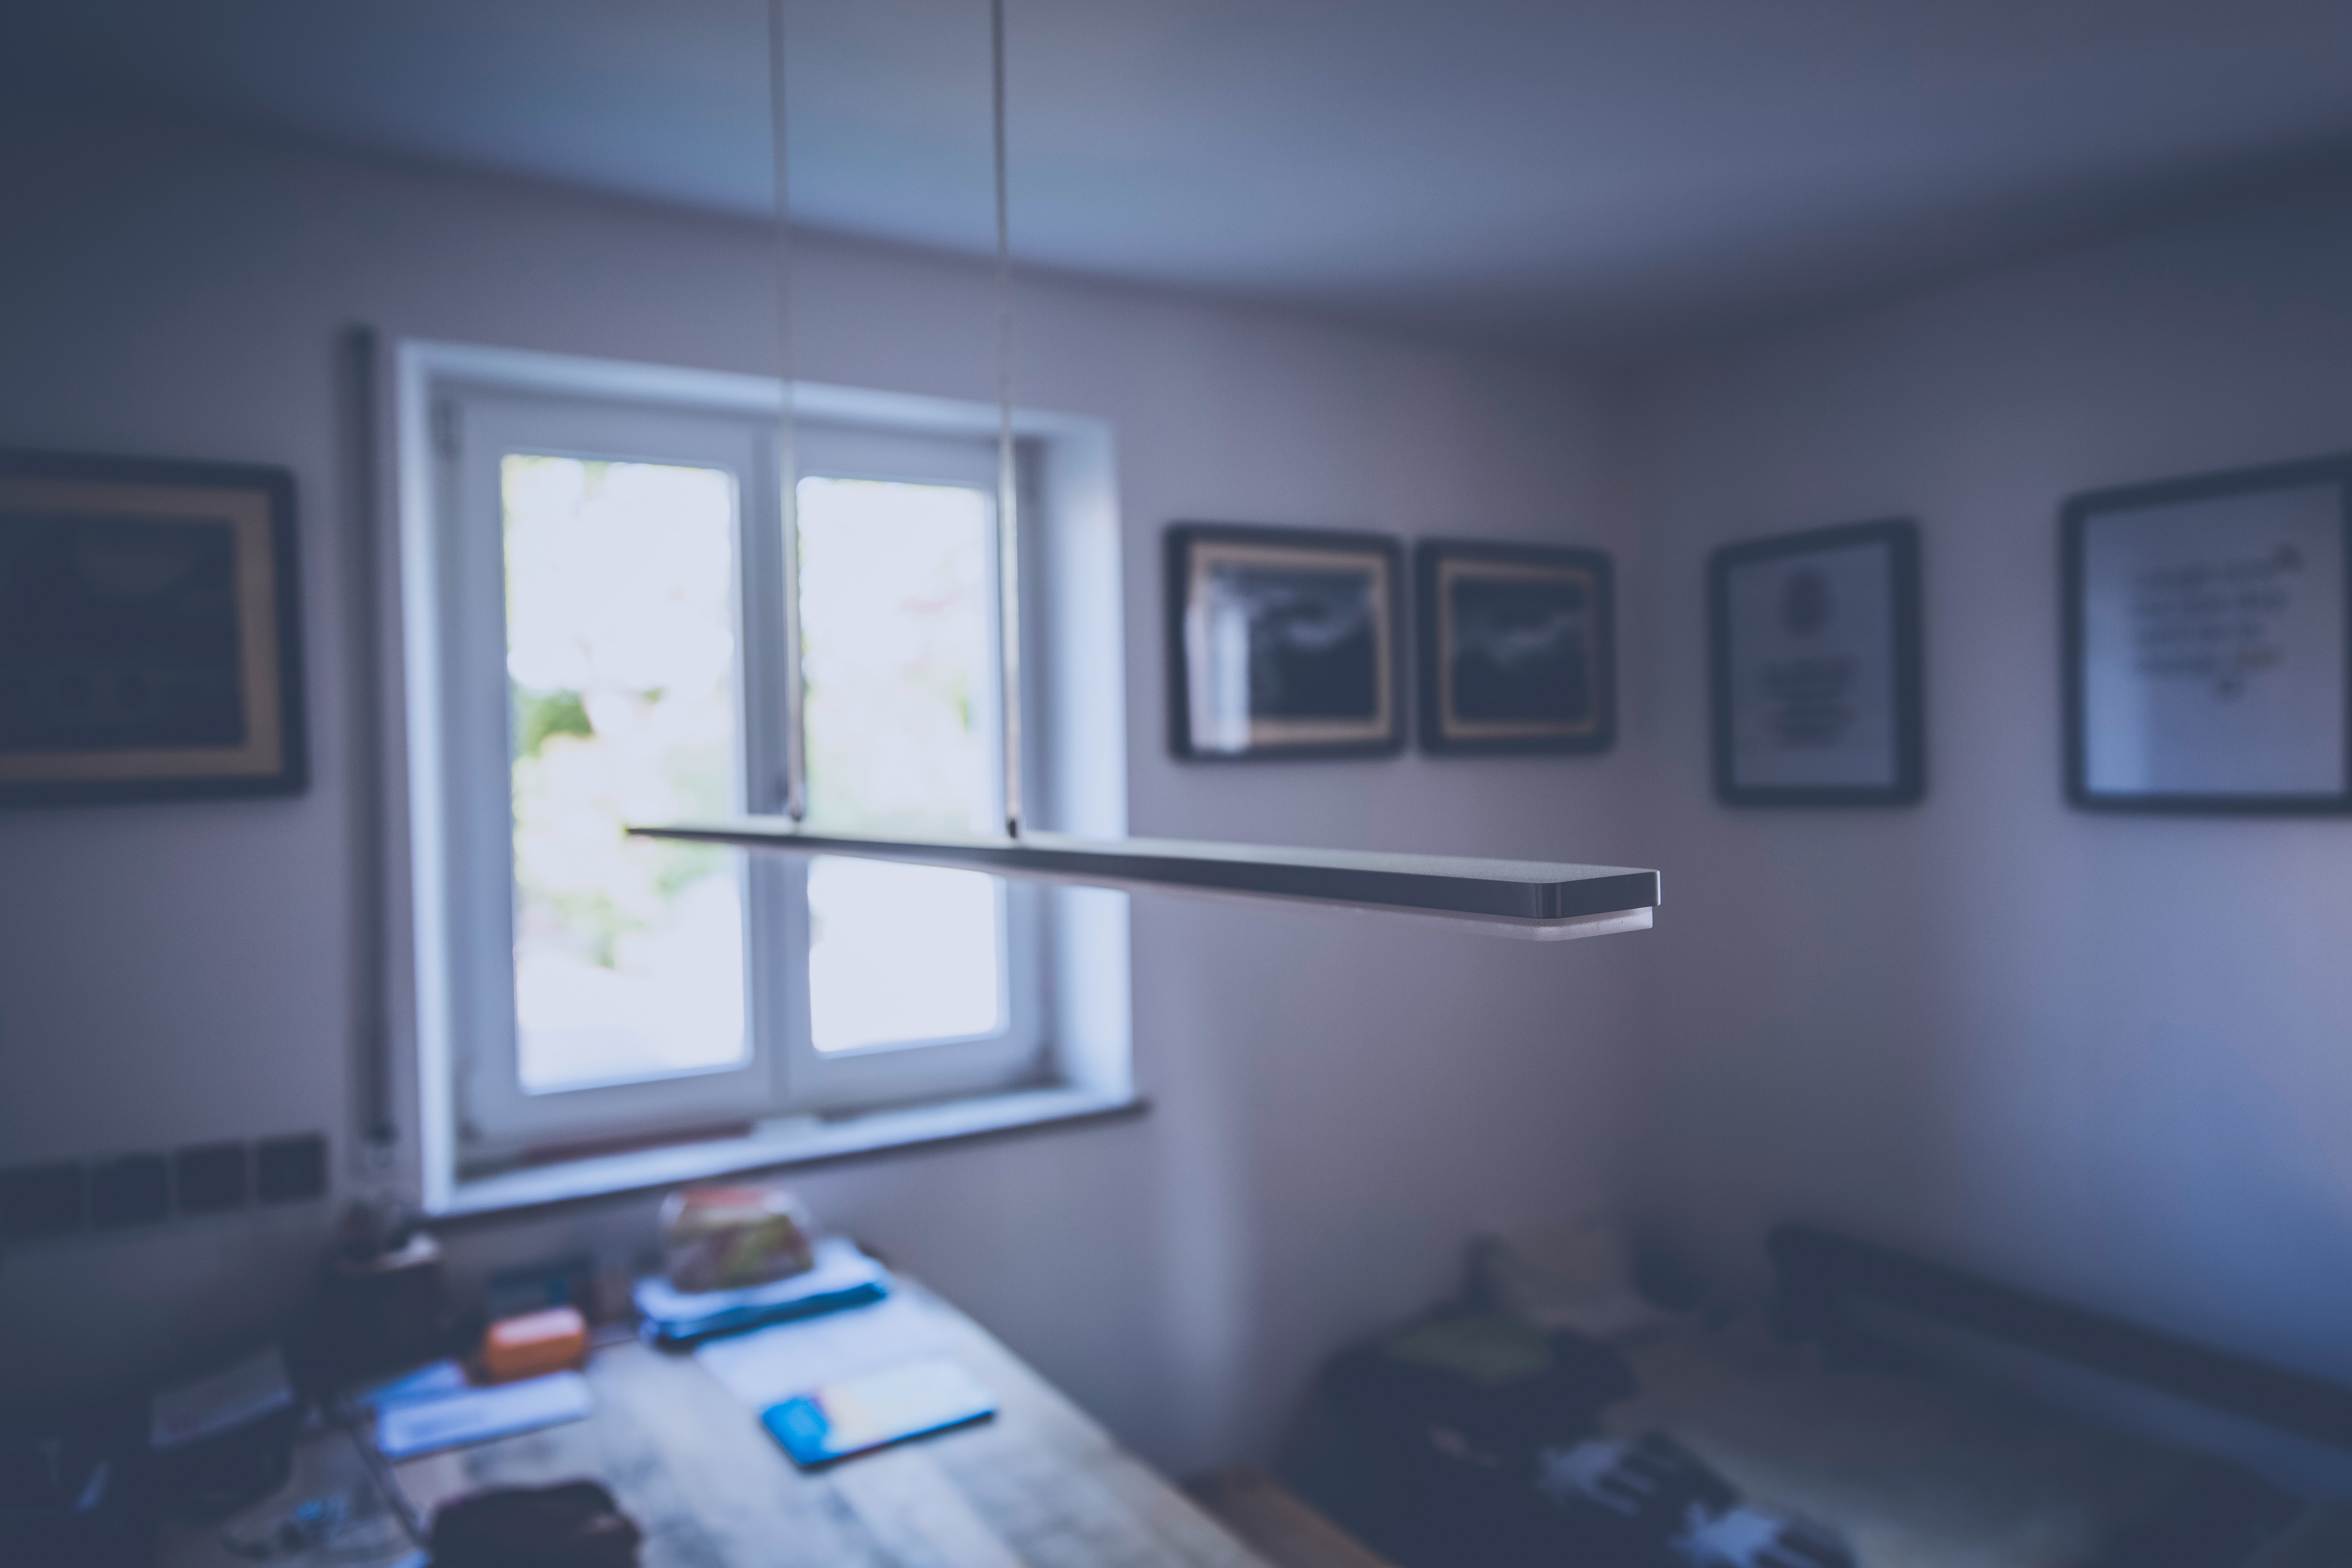 Ceiling lamp hangs down in an empty room with a table